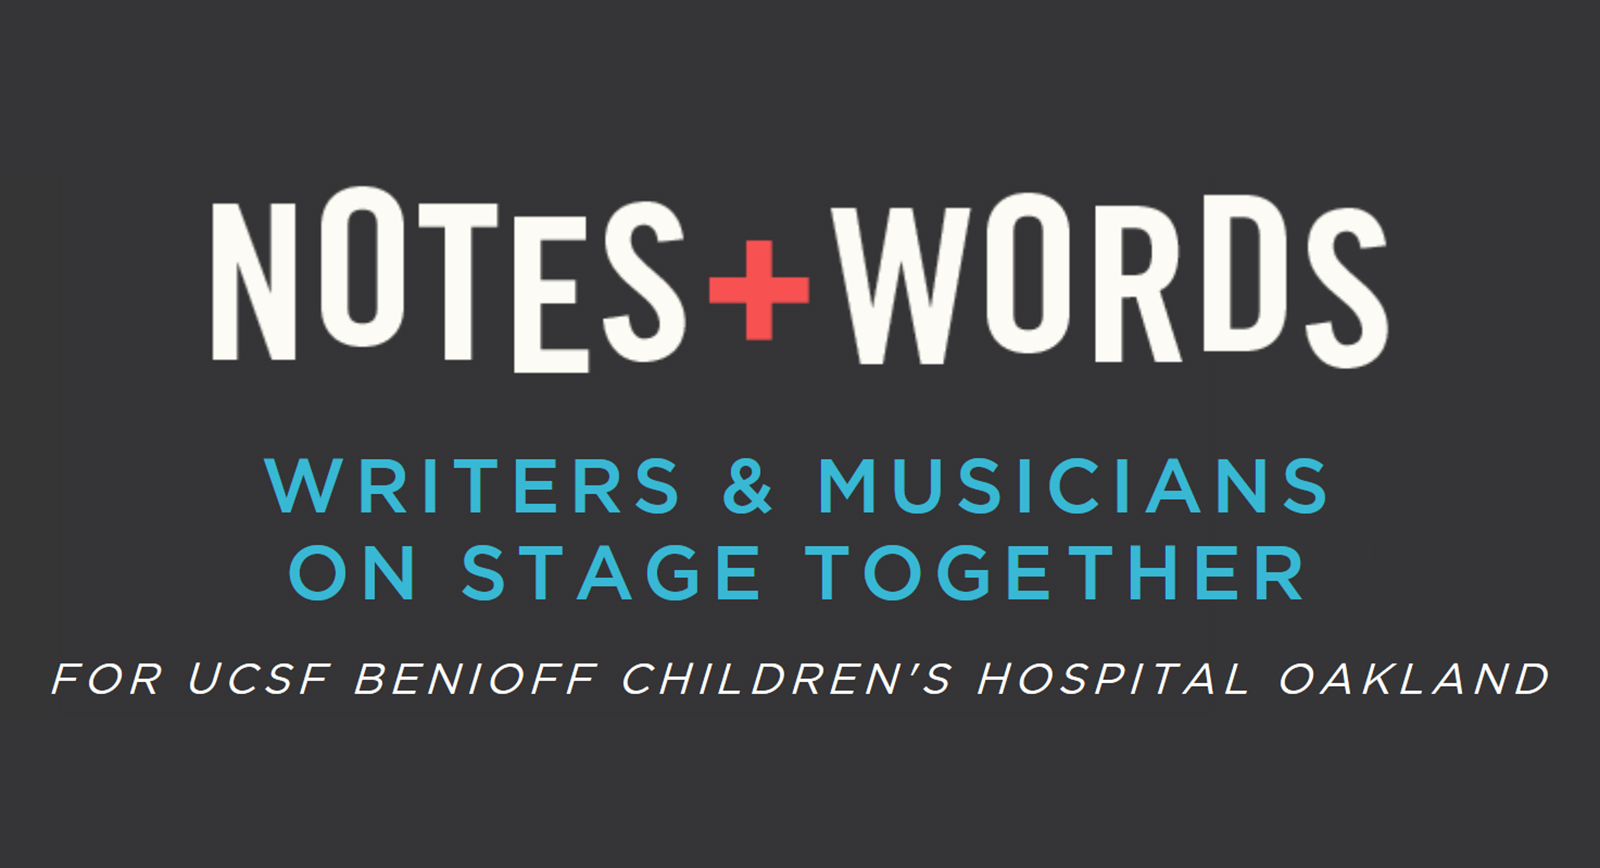 Notes-&-Words-2016-Benefit-For-UCSF-Benioff-Children's-Hospital-Oakland-Fox-Theater-Chris-Martin-Coldplay-Portal-Tickets-FI